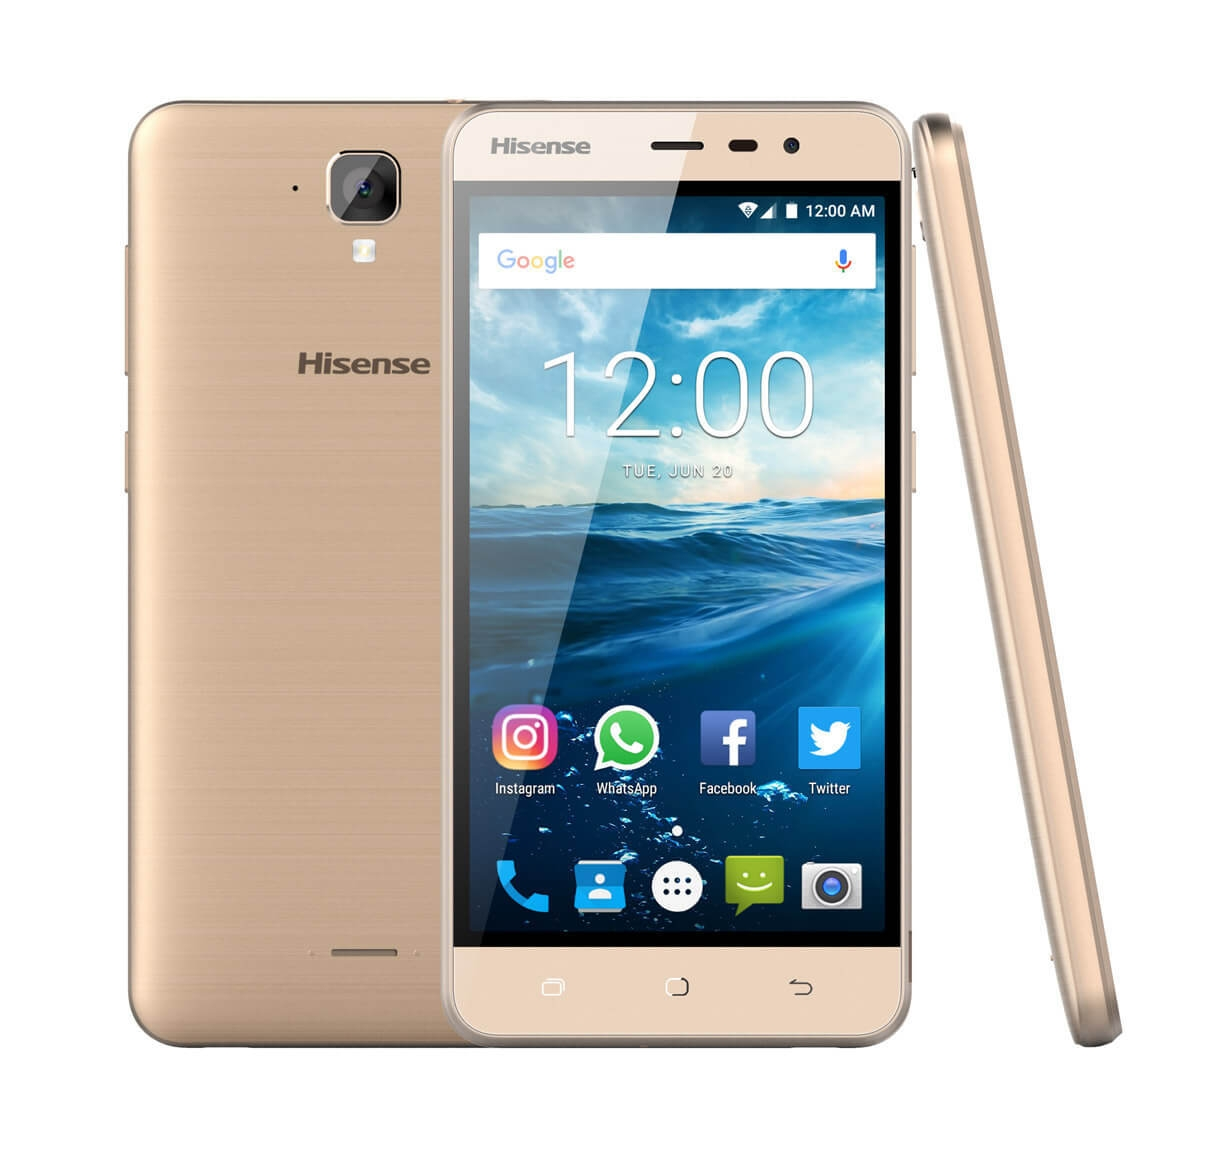 Image result for Hisense F10 CAMERA IMAGE